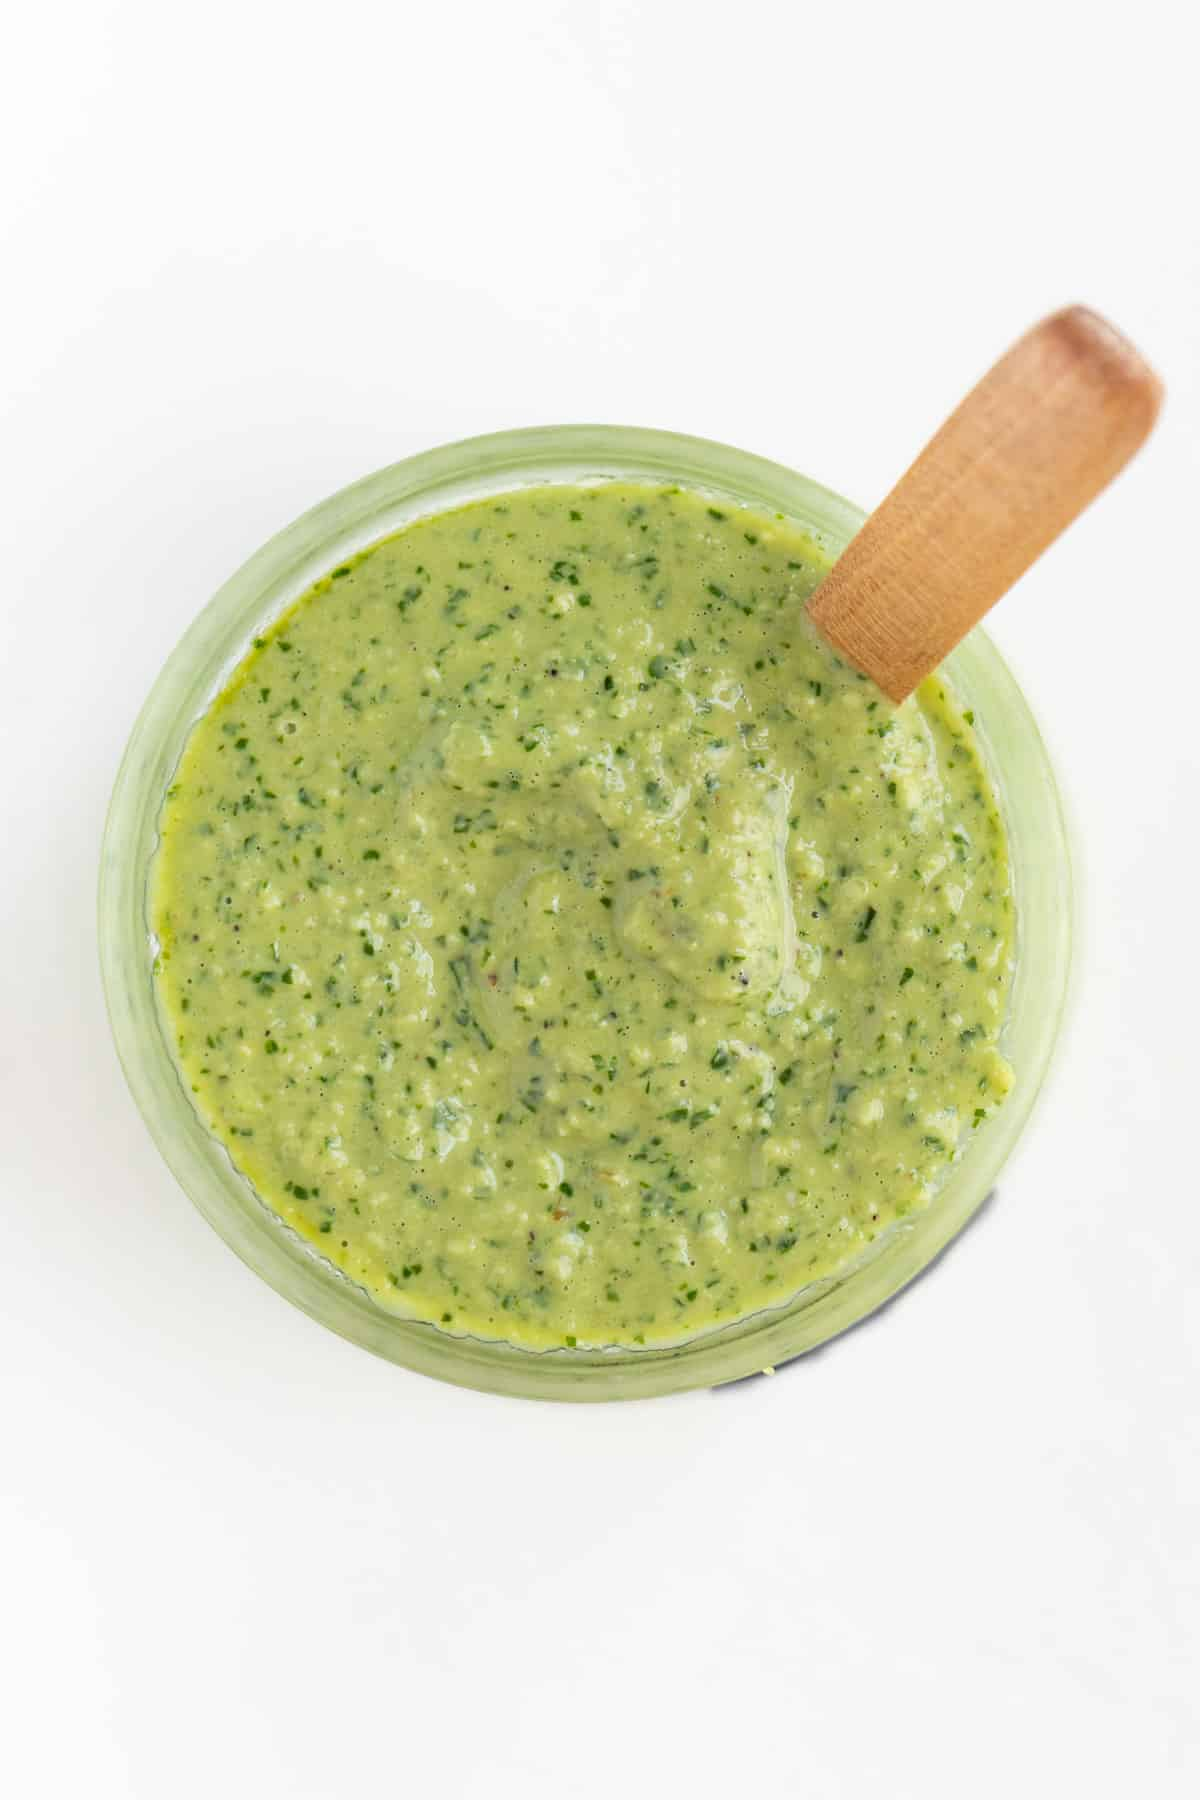 green pesto sauce inside a glass jar with a wooden spoon sticking out of it